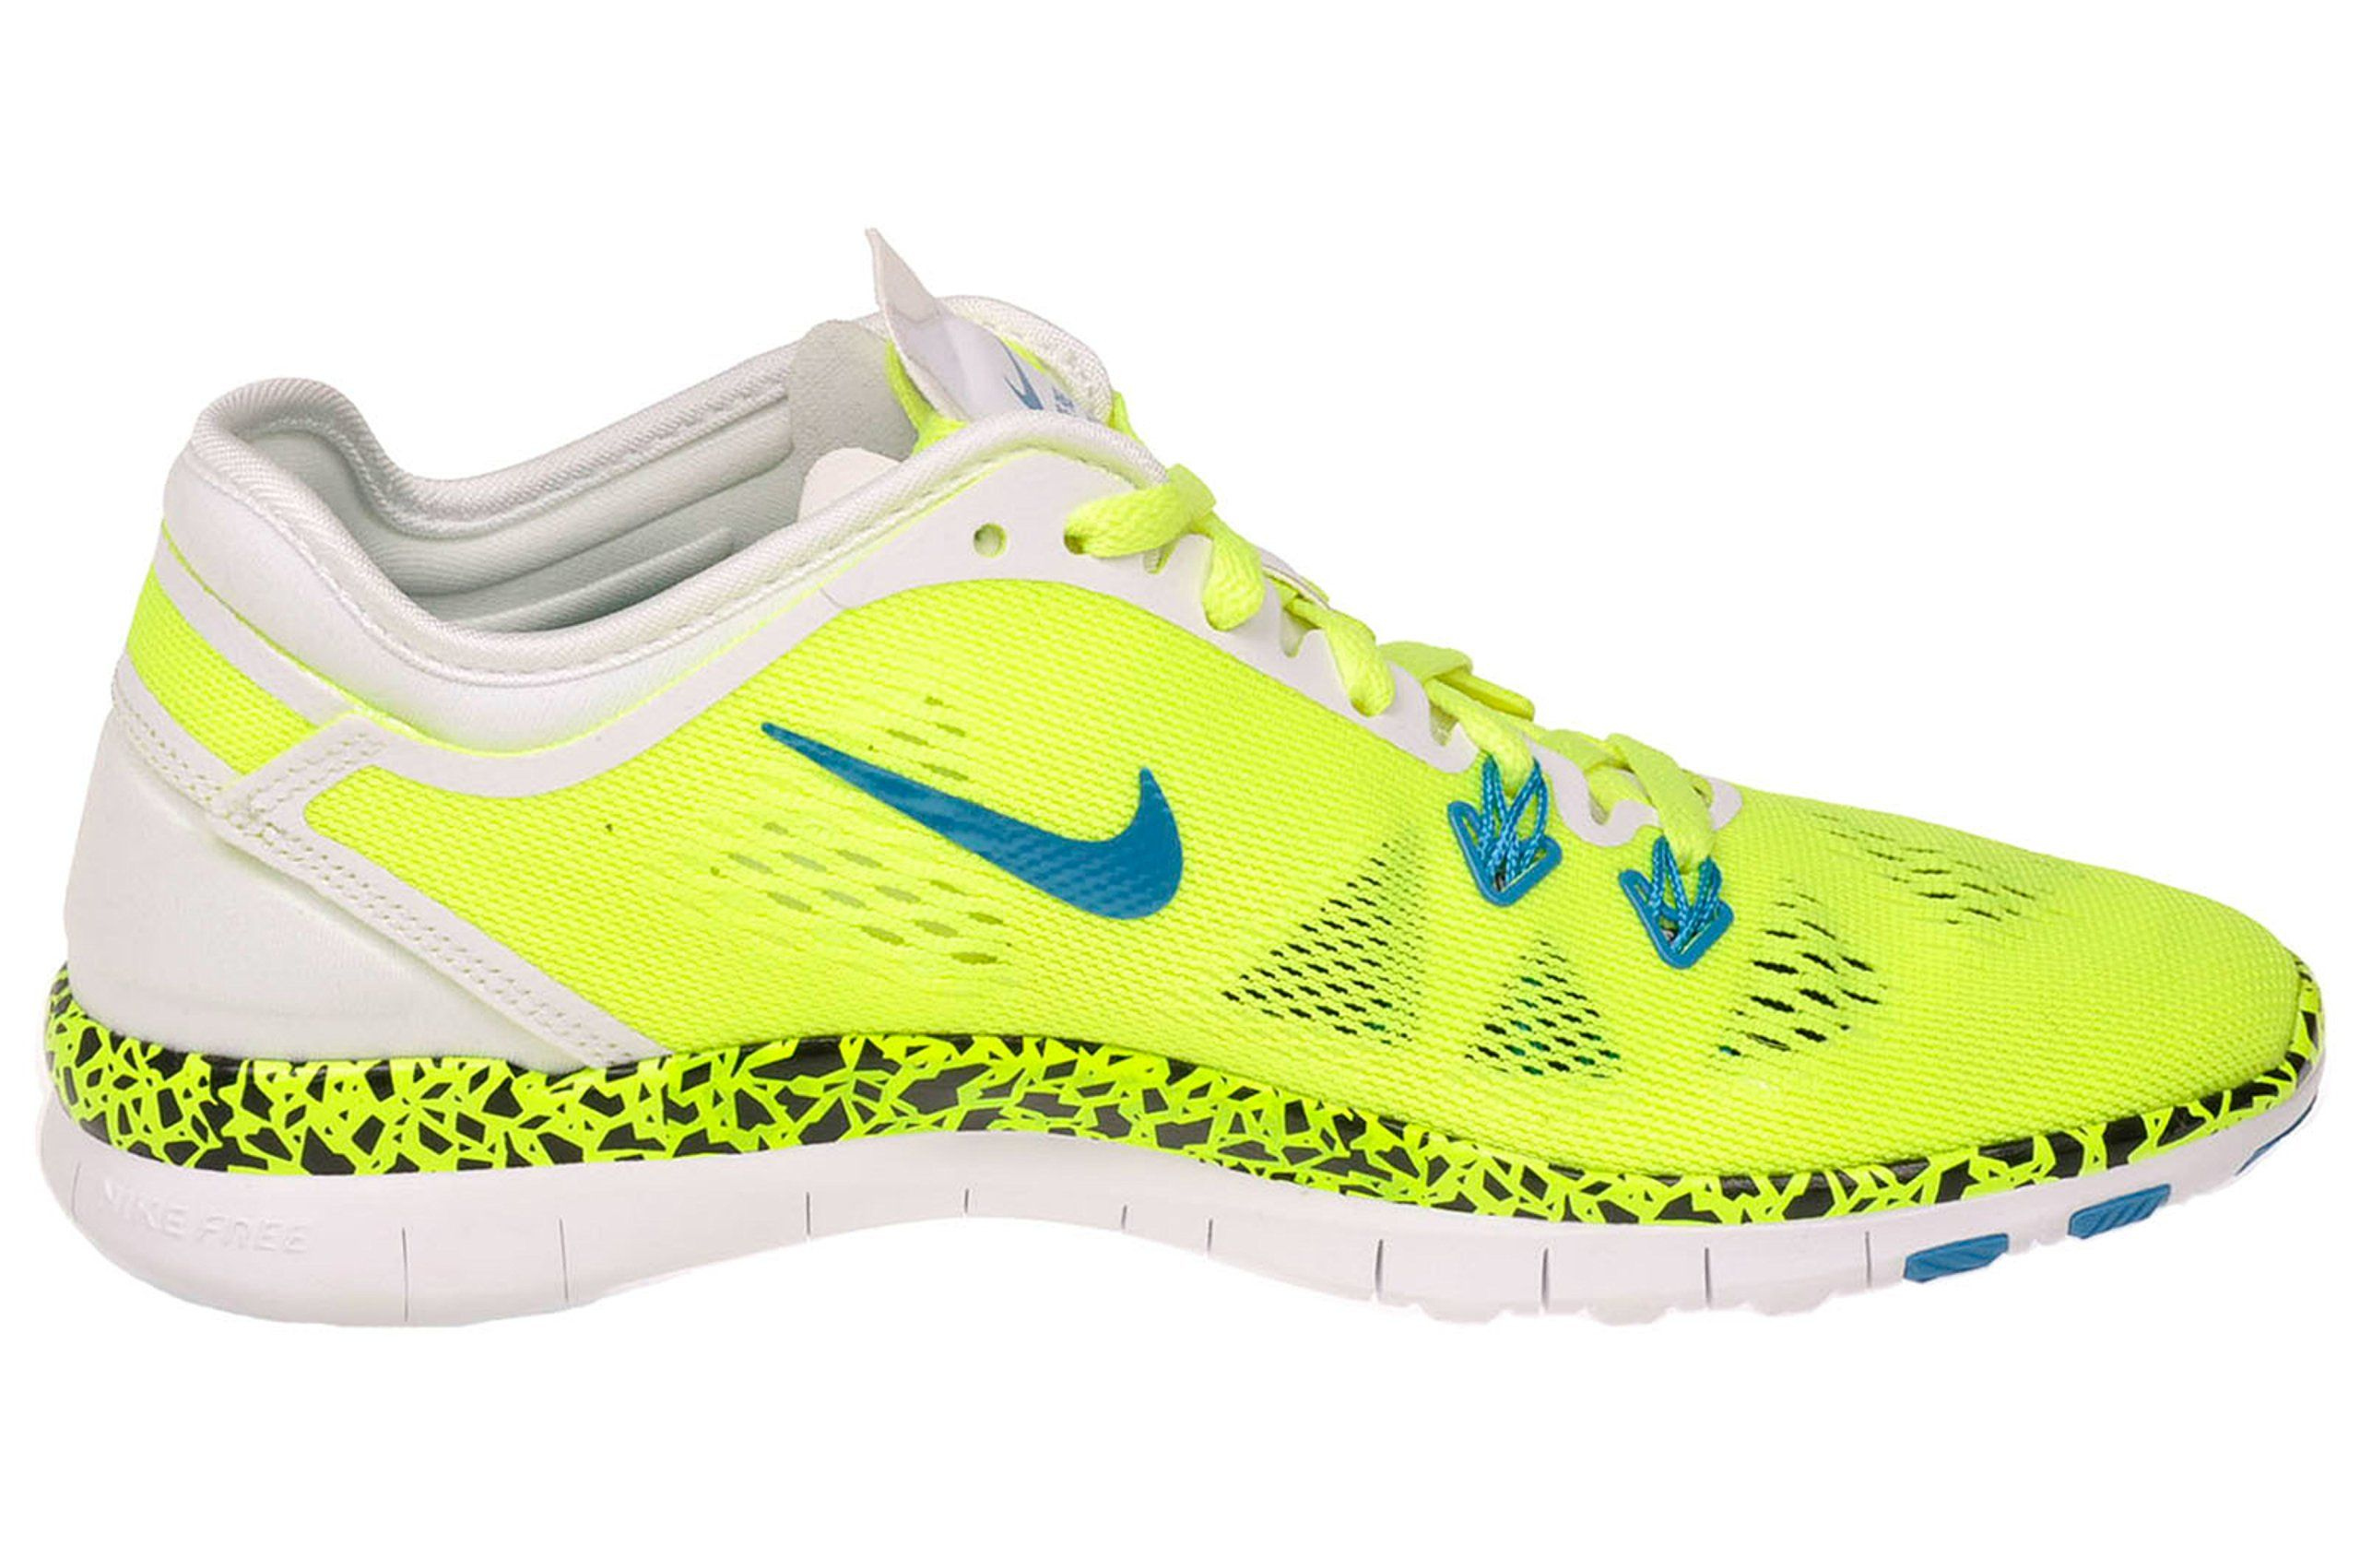 nike free run 5.0 made in vietnam products